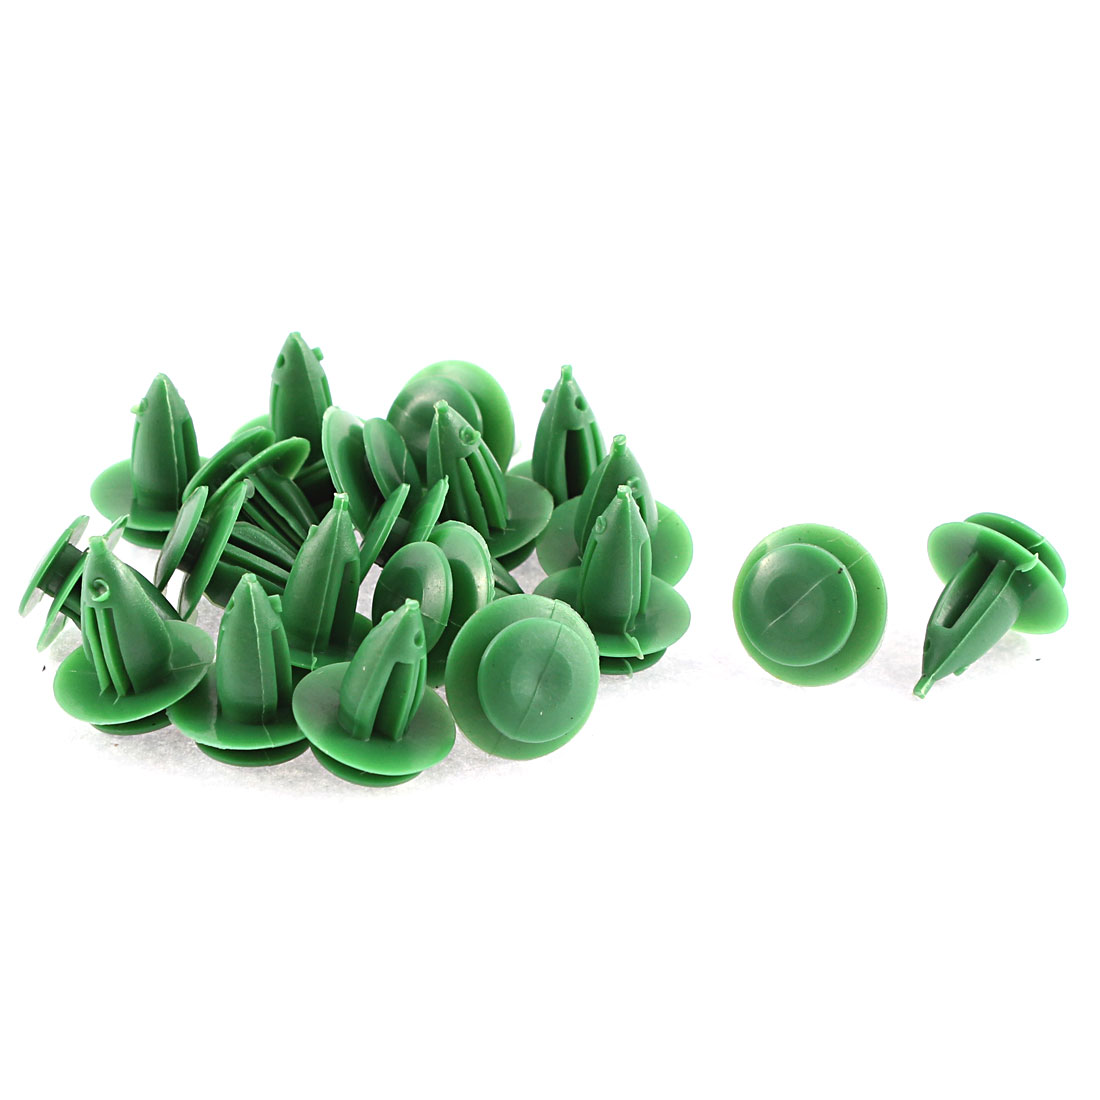 Unique Bargains 100 Pcs Green Plastic Push-Type Moulding Trim Panel Door Retainer Clip